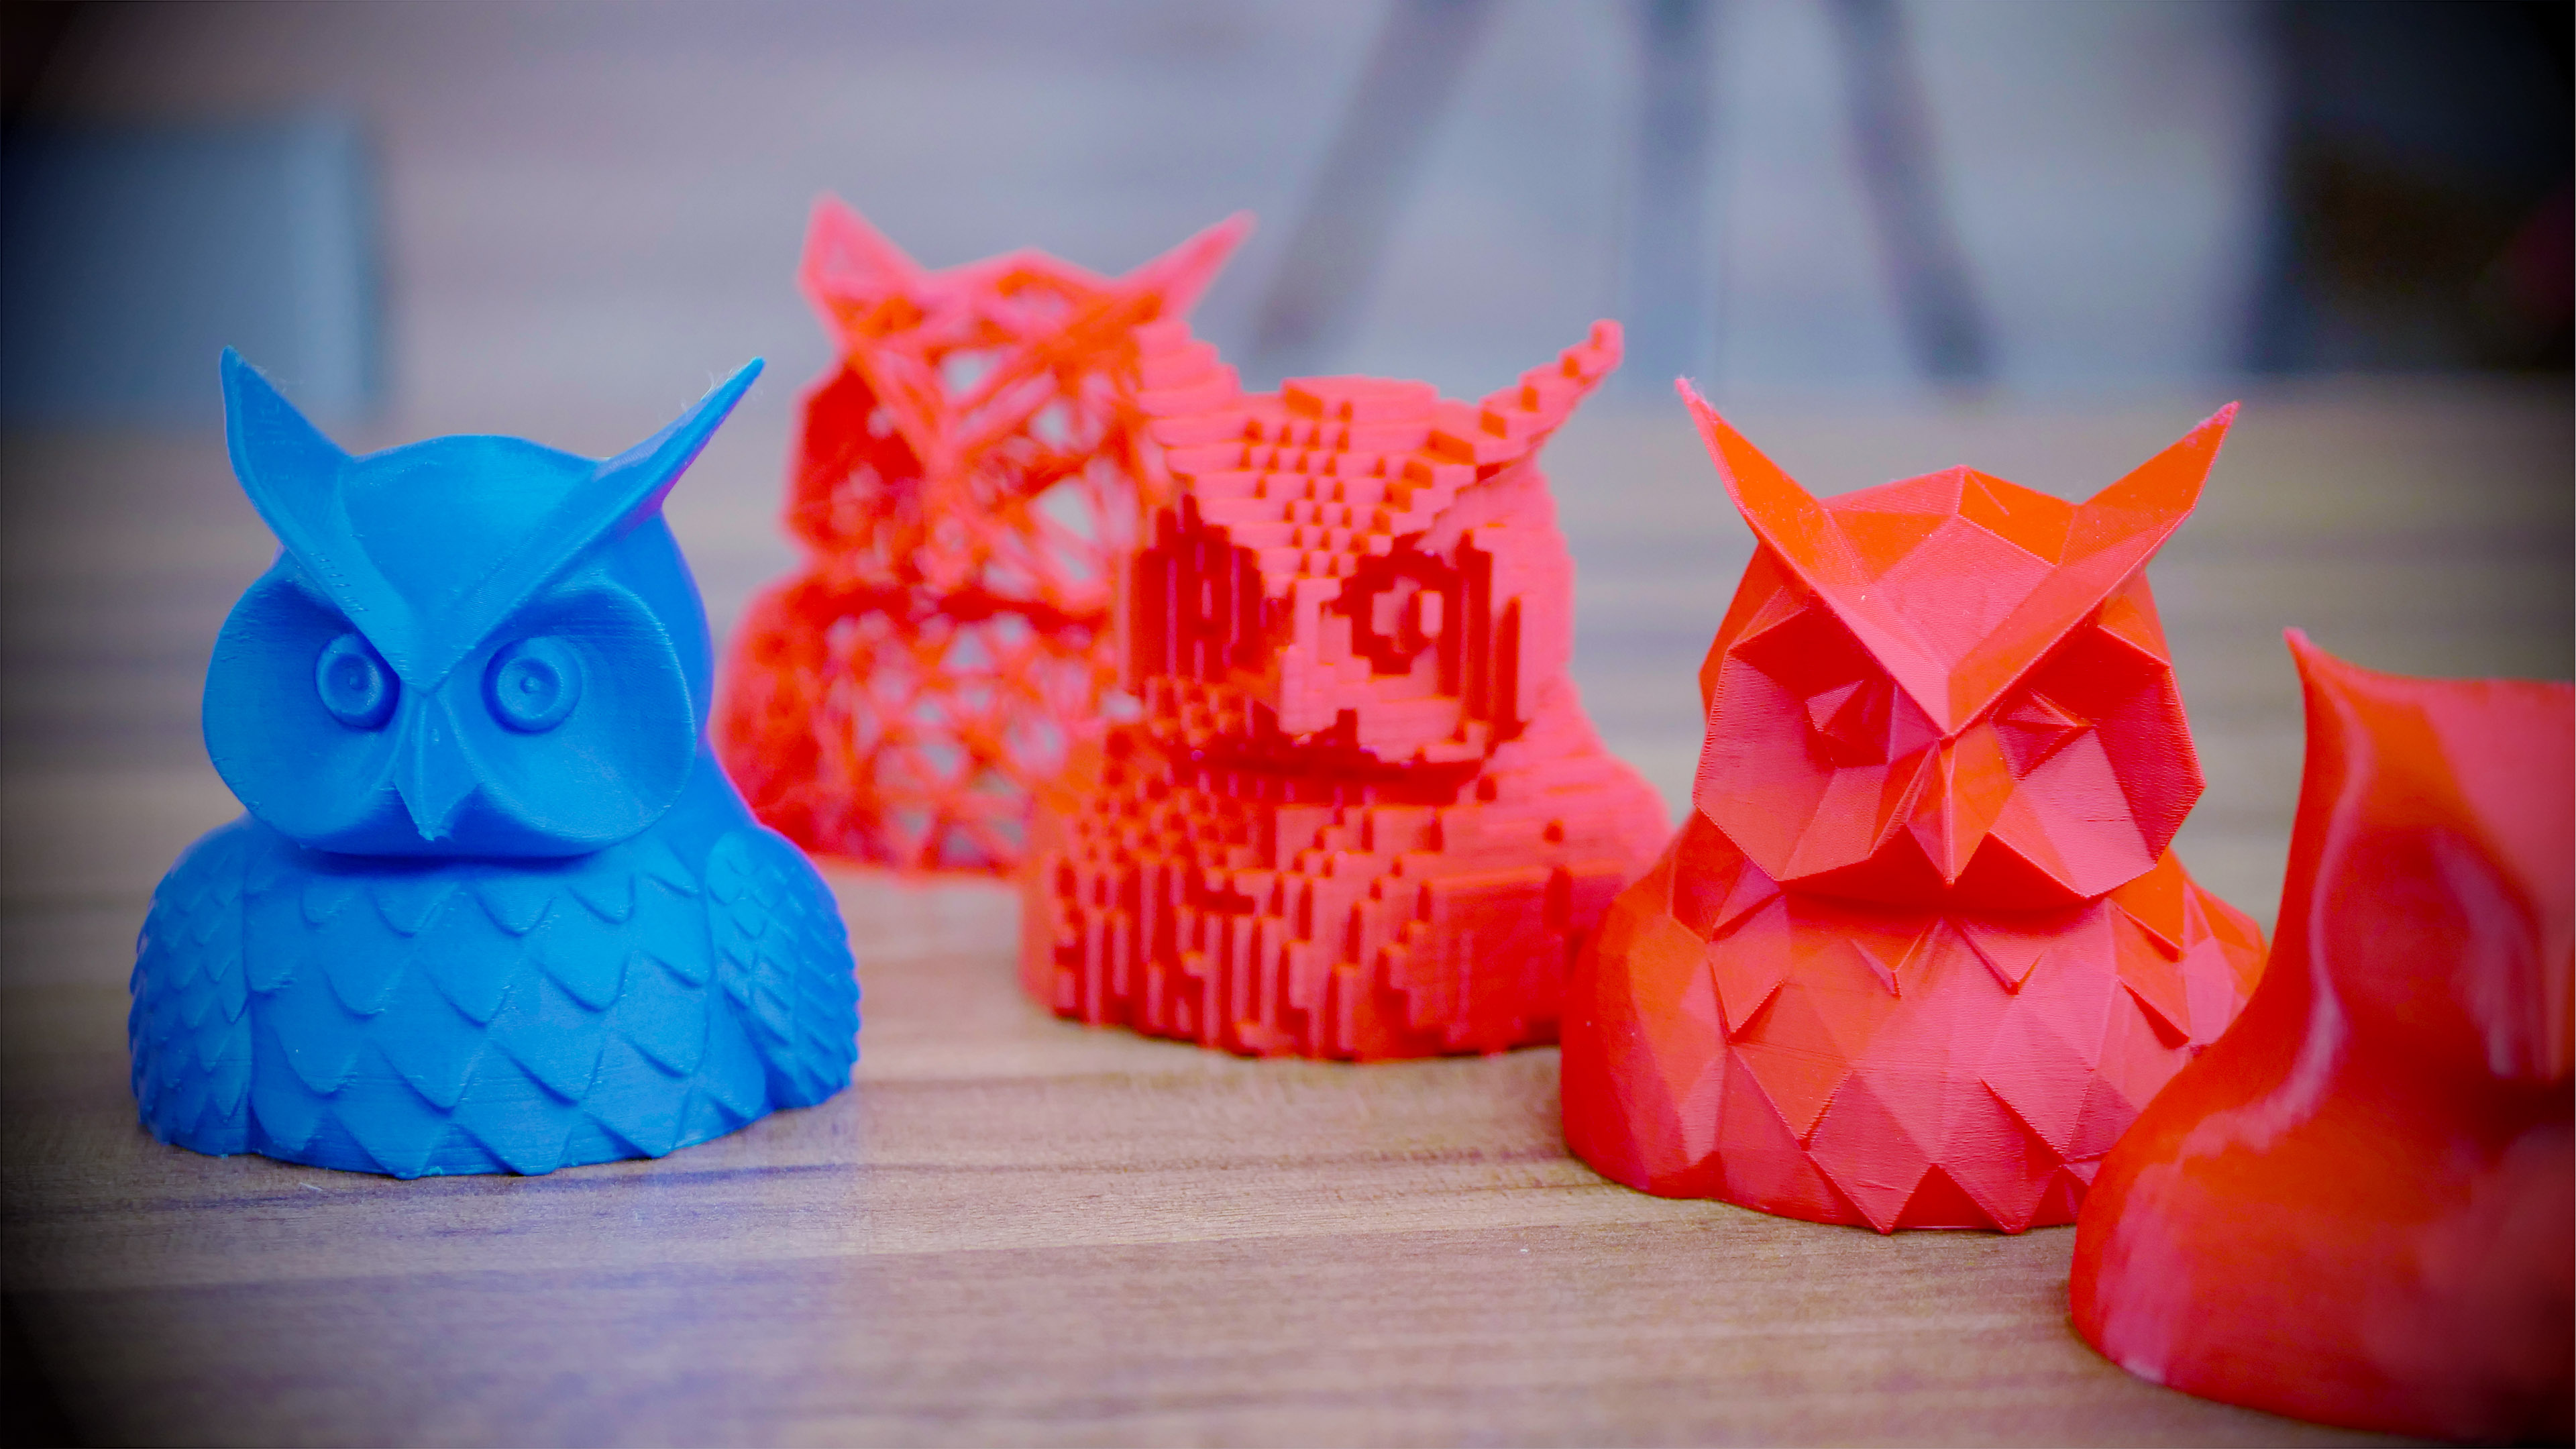 Learn the art of STL-bending! – Tom's 3D printing guides and